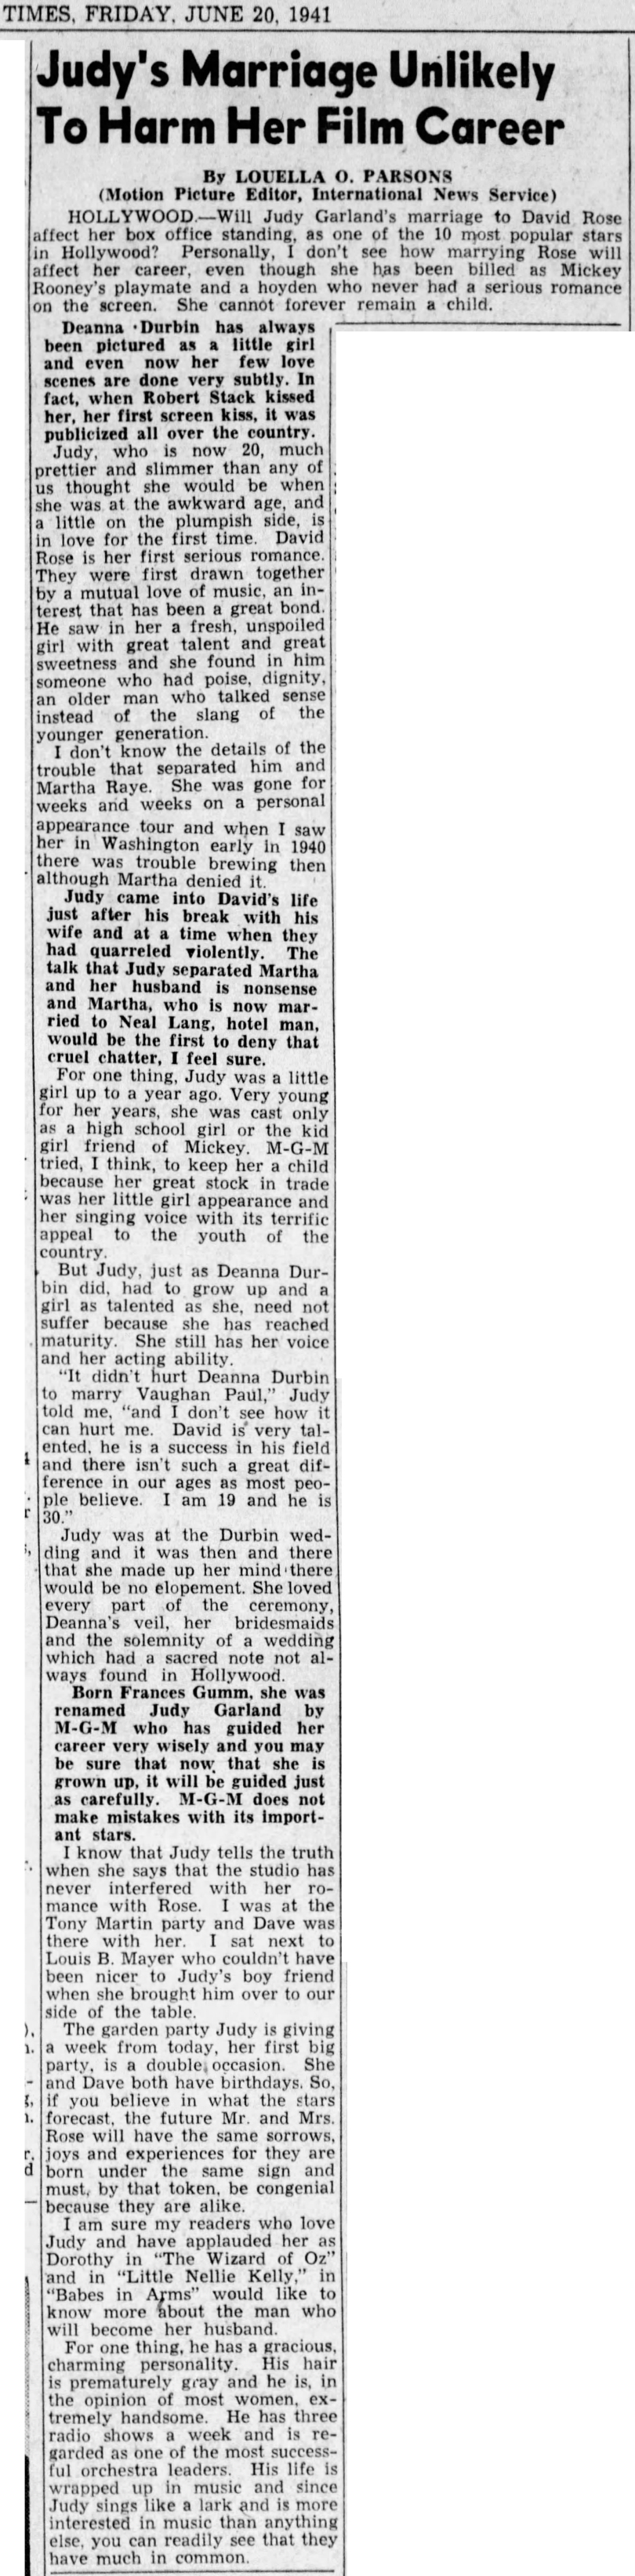 June 20, 1941 MARRIAGE WON'T HURT CAREER Tampa_Bay_Times (St Petersburg FL)